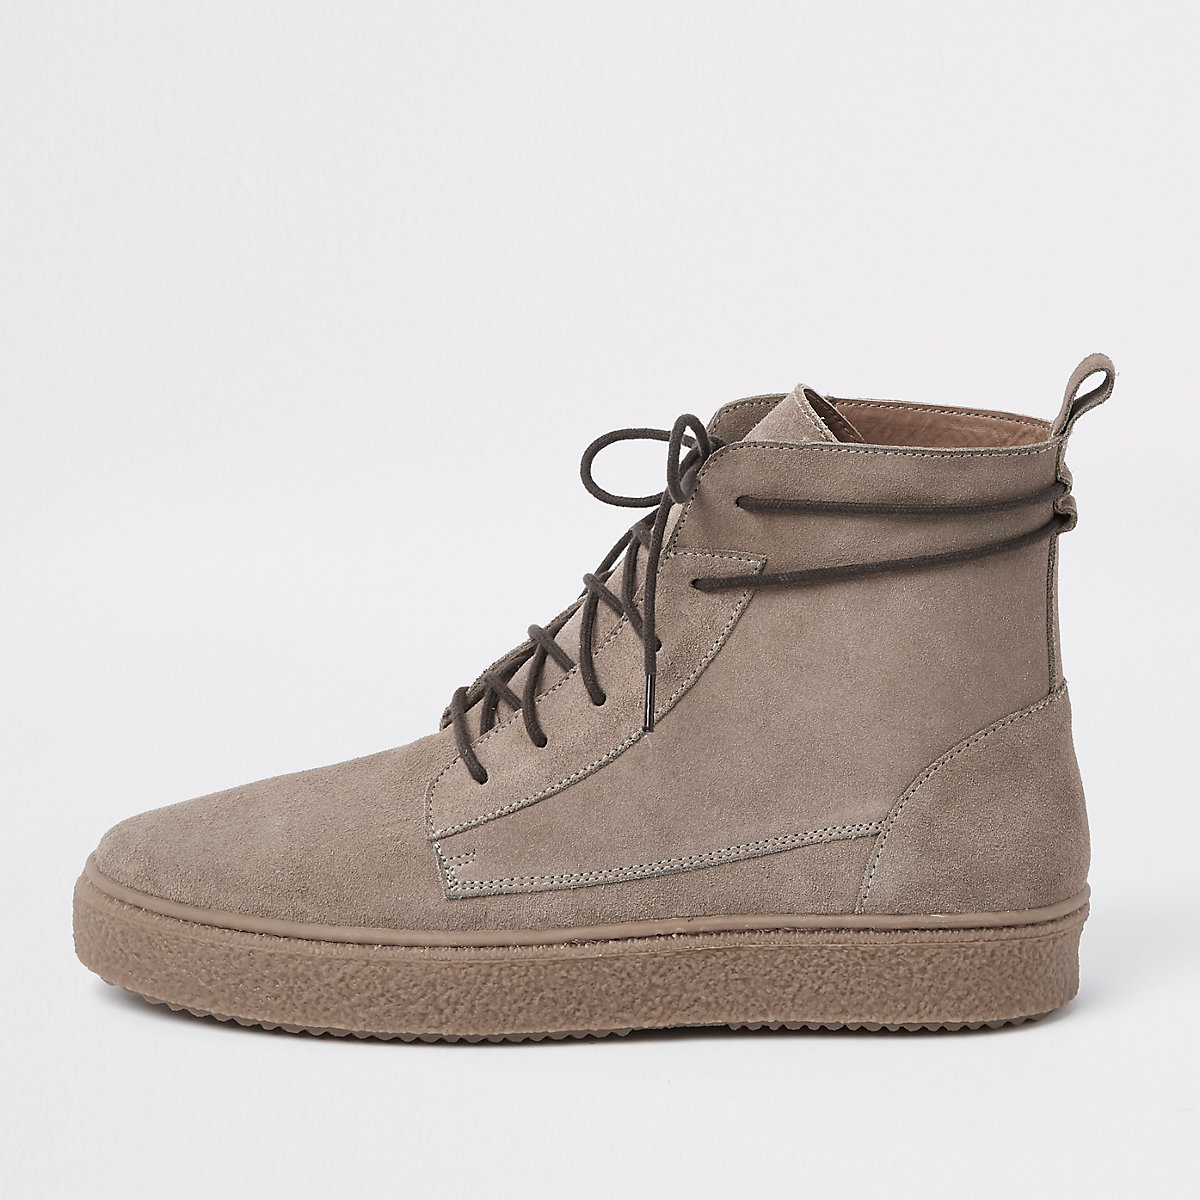 Stone suede wrap around desert boots